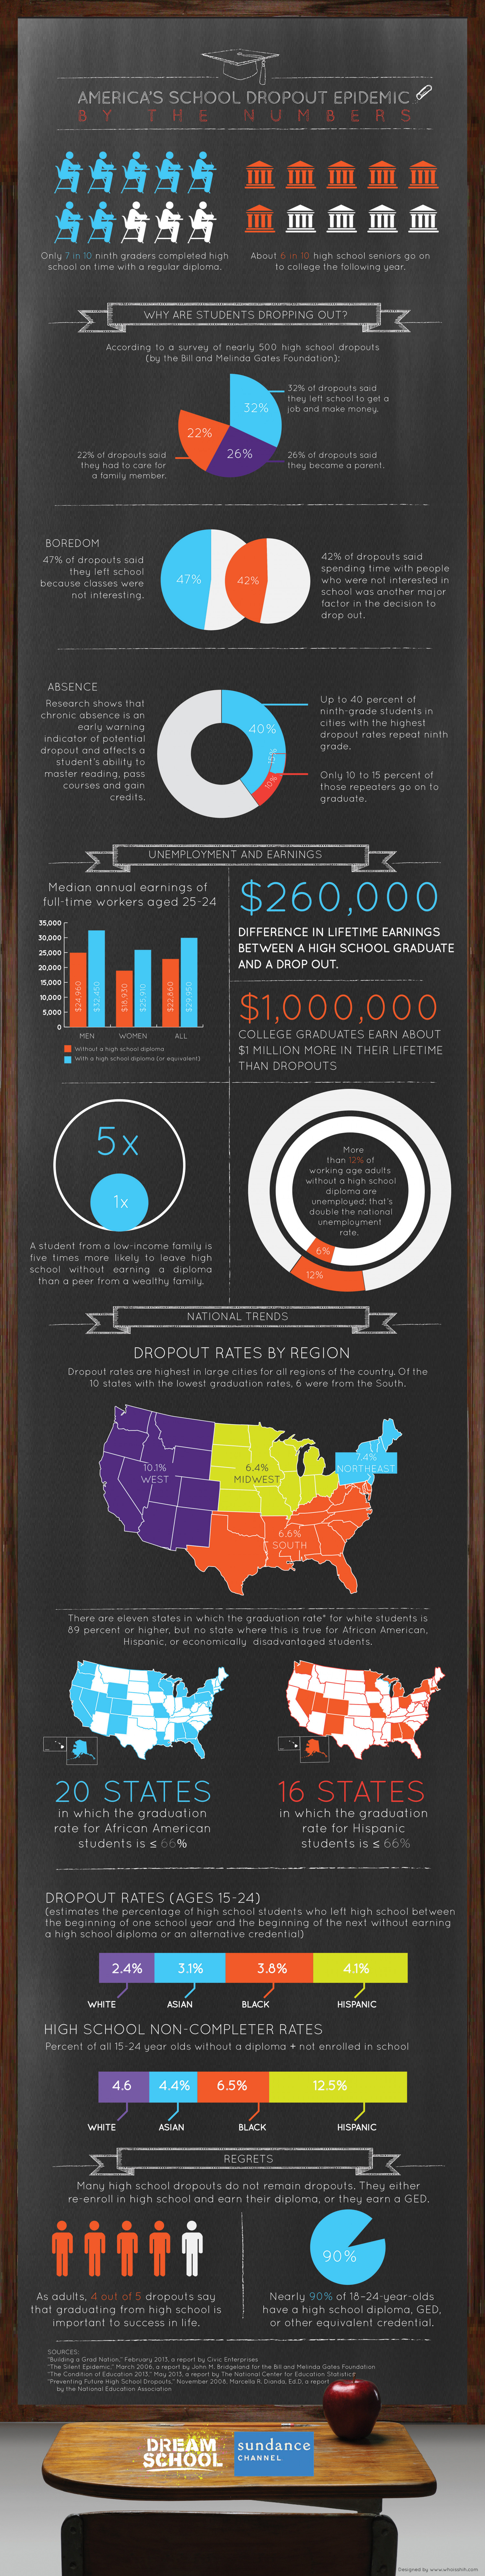 America's School Dropout Epidemic By the Numbers Infographic